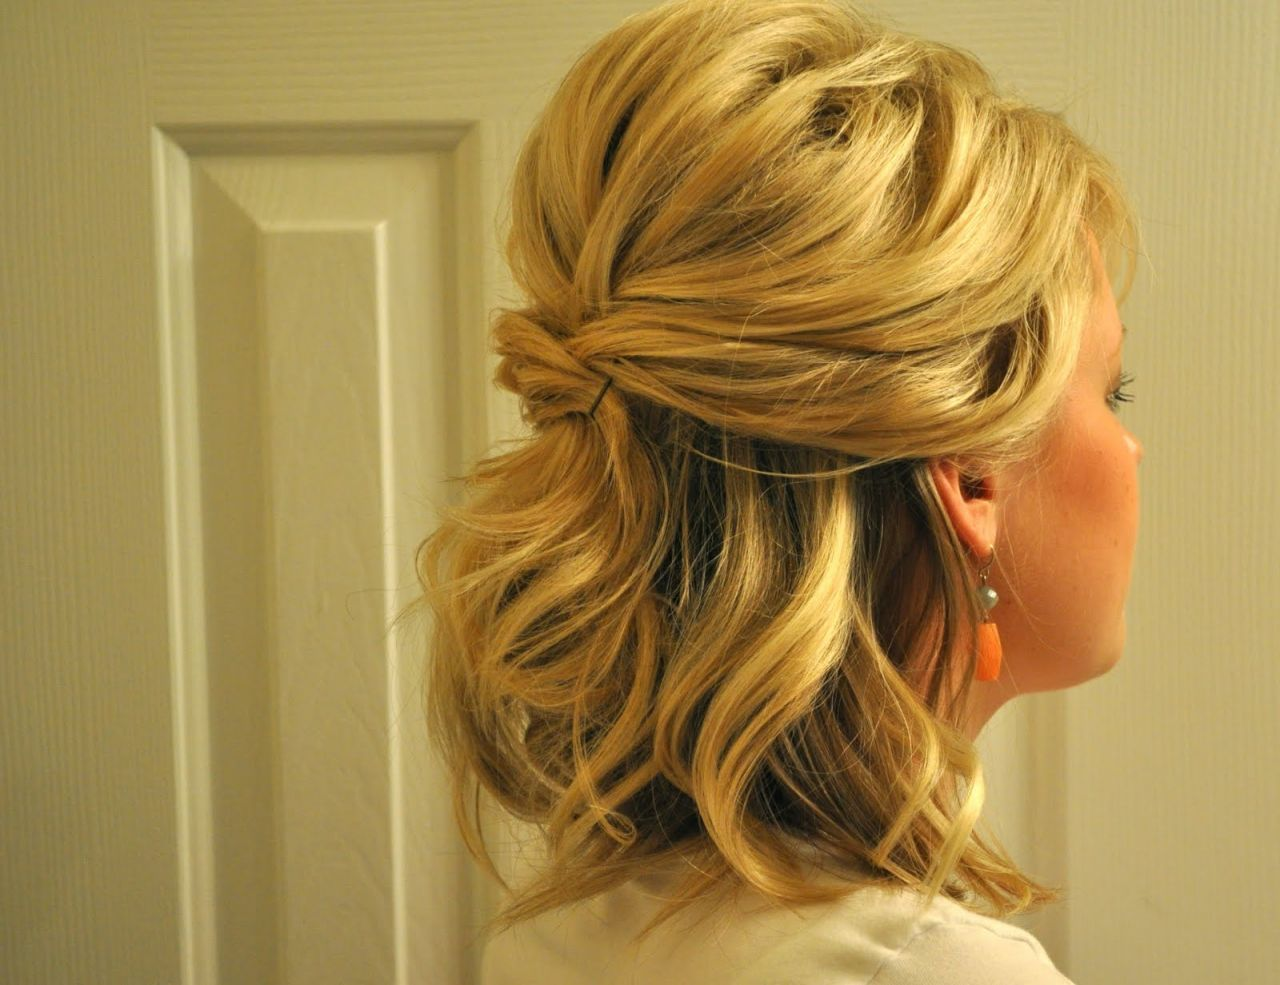 hairstyles for curly hair half up half down prom hairstyles